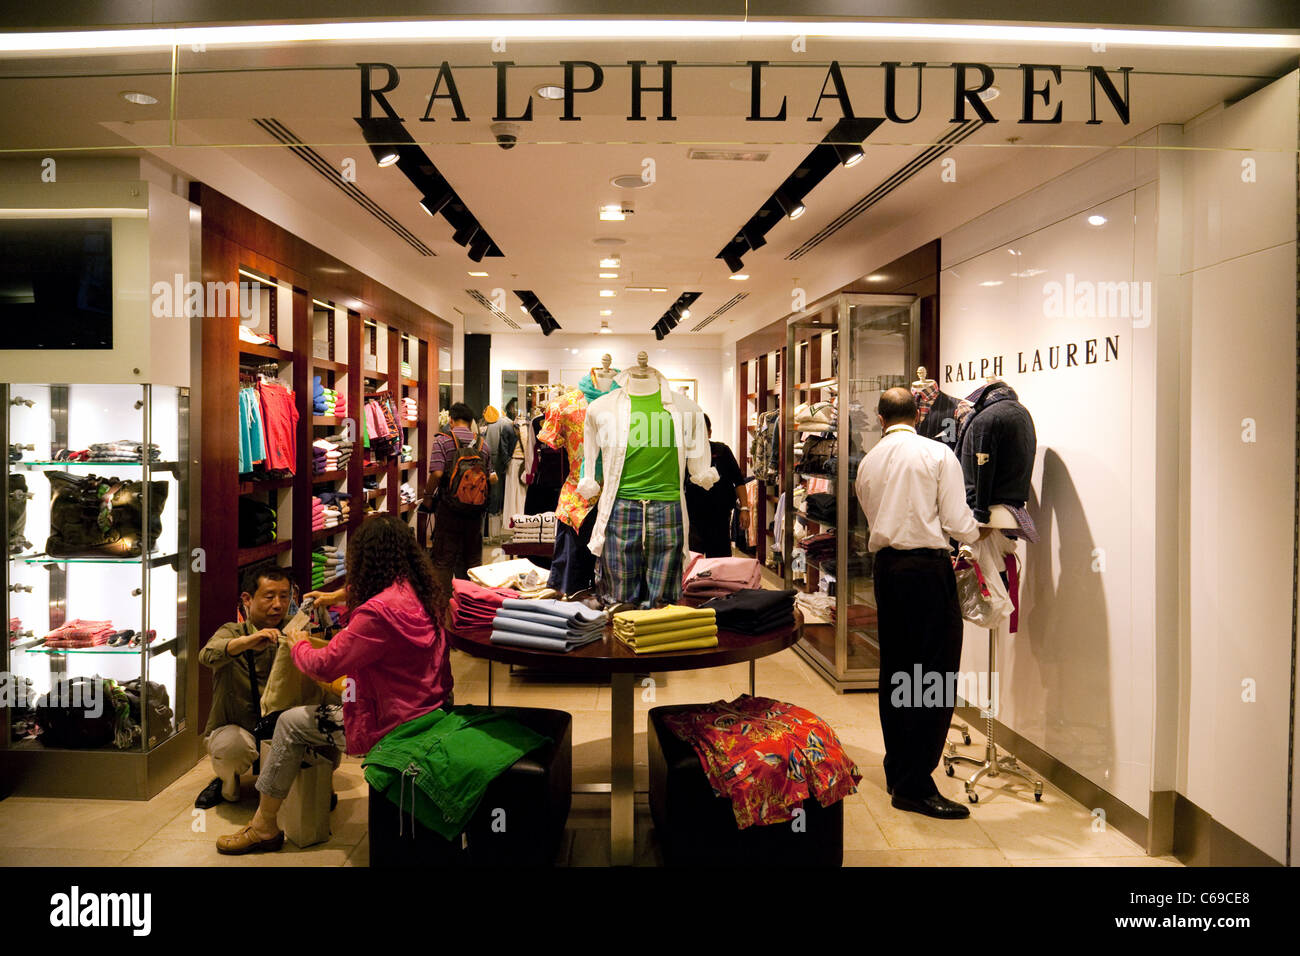 Ralph Lauren store, Departure lounge, terminal 3, Heathrow airport London UK - Stock Image